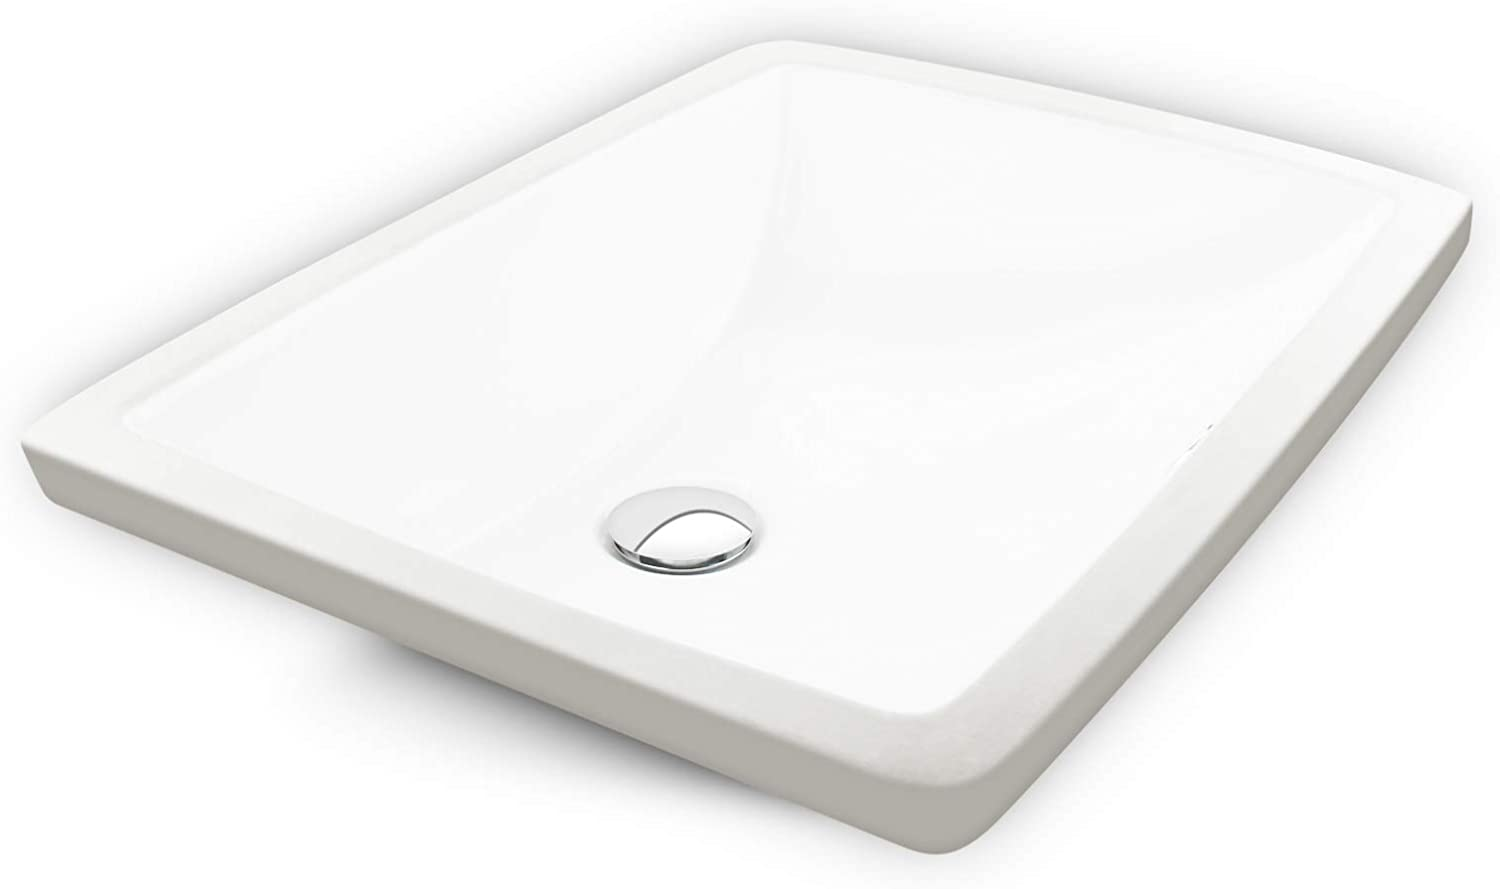 20 x15 Undermount Bathroom Sink with Overflow, White Porcelain Lavatory Rectangular Vanity Ceramic Sink